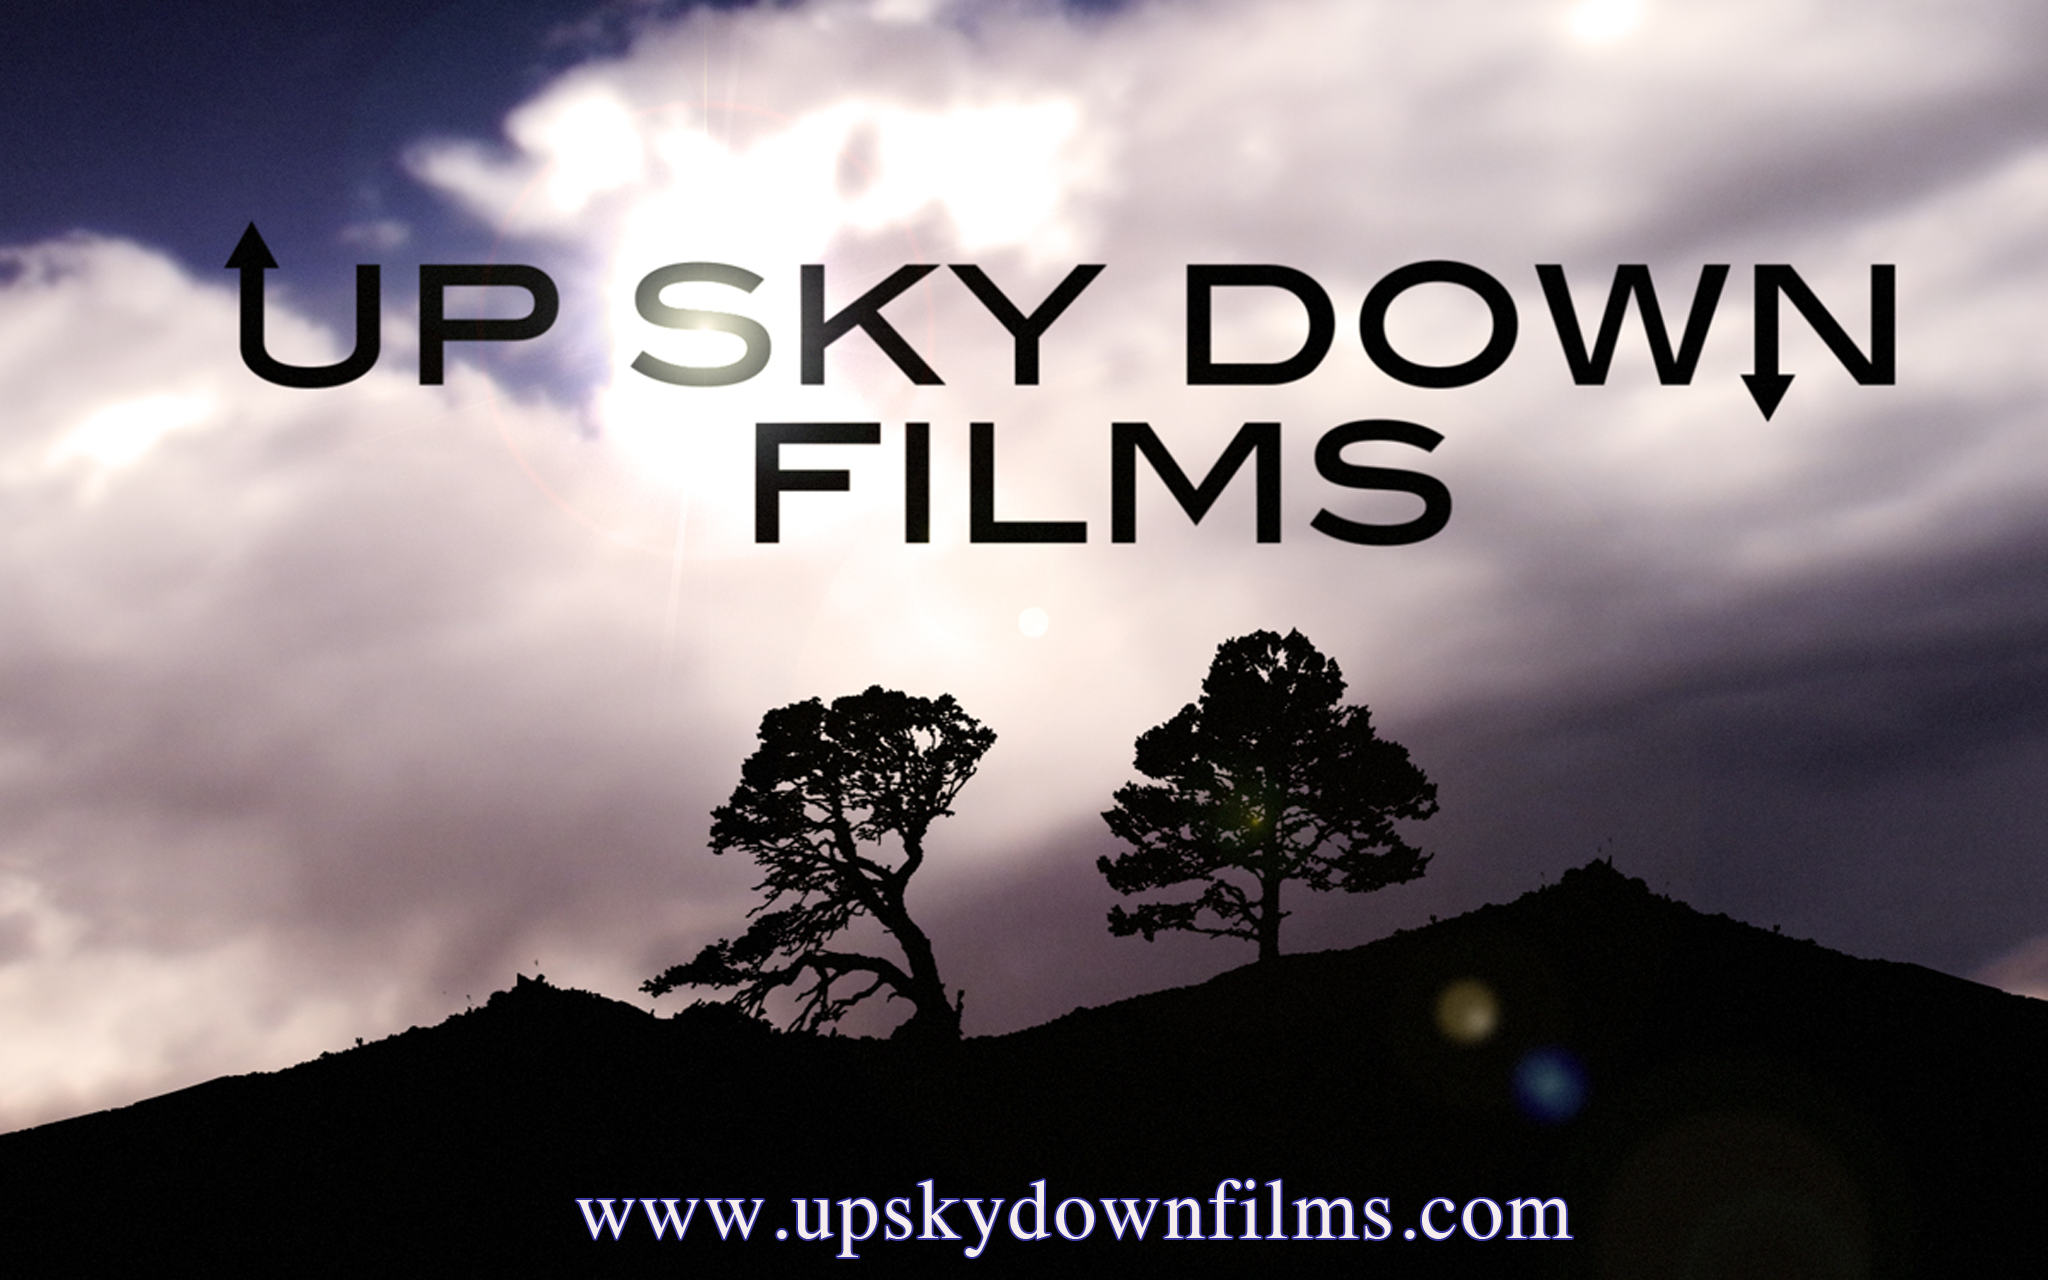 Up Sky Down Films